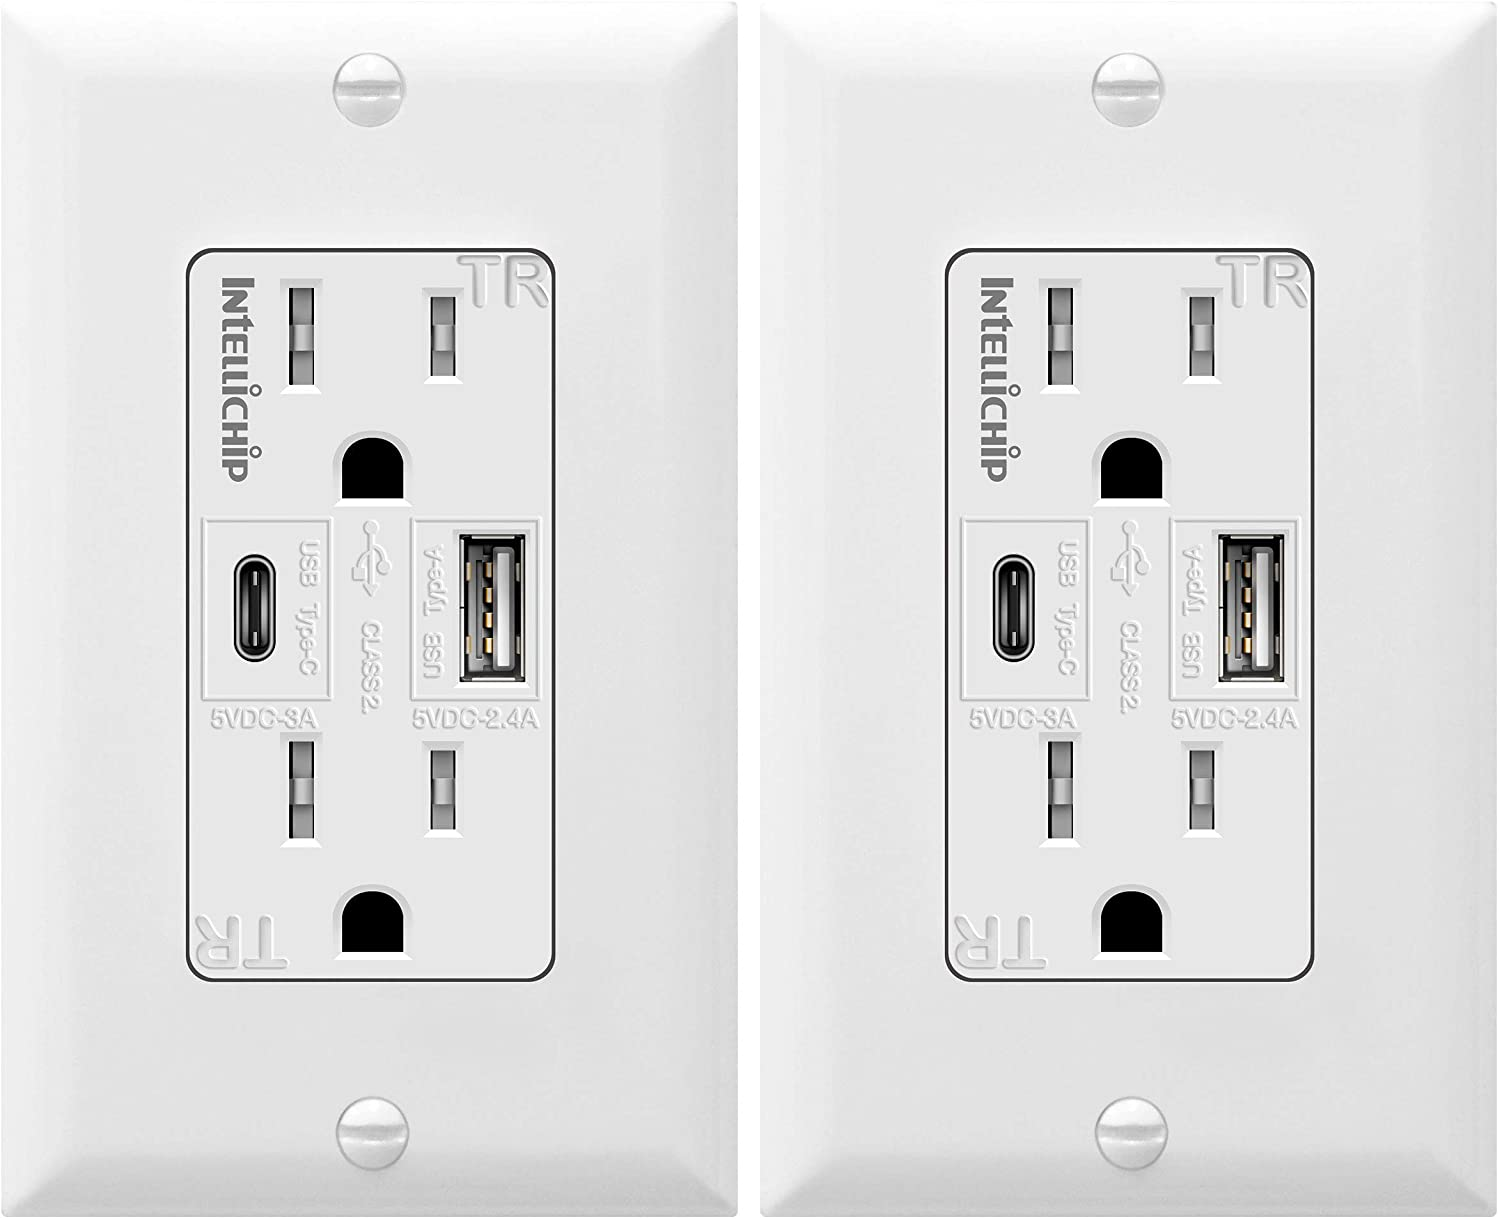 TOPGREENER 5.8A Ultra High Speed USB Type-C/A Combo Outlet, 15A Tamper-Resistant Receptacle, Compatible with iPhone SE/11/XS/XR/X/8, Samsung Galaxy S20/S10/S9/Note &More, TU21558AC-2PCS, White, 2 Pack